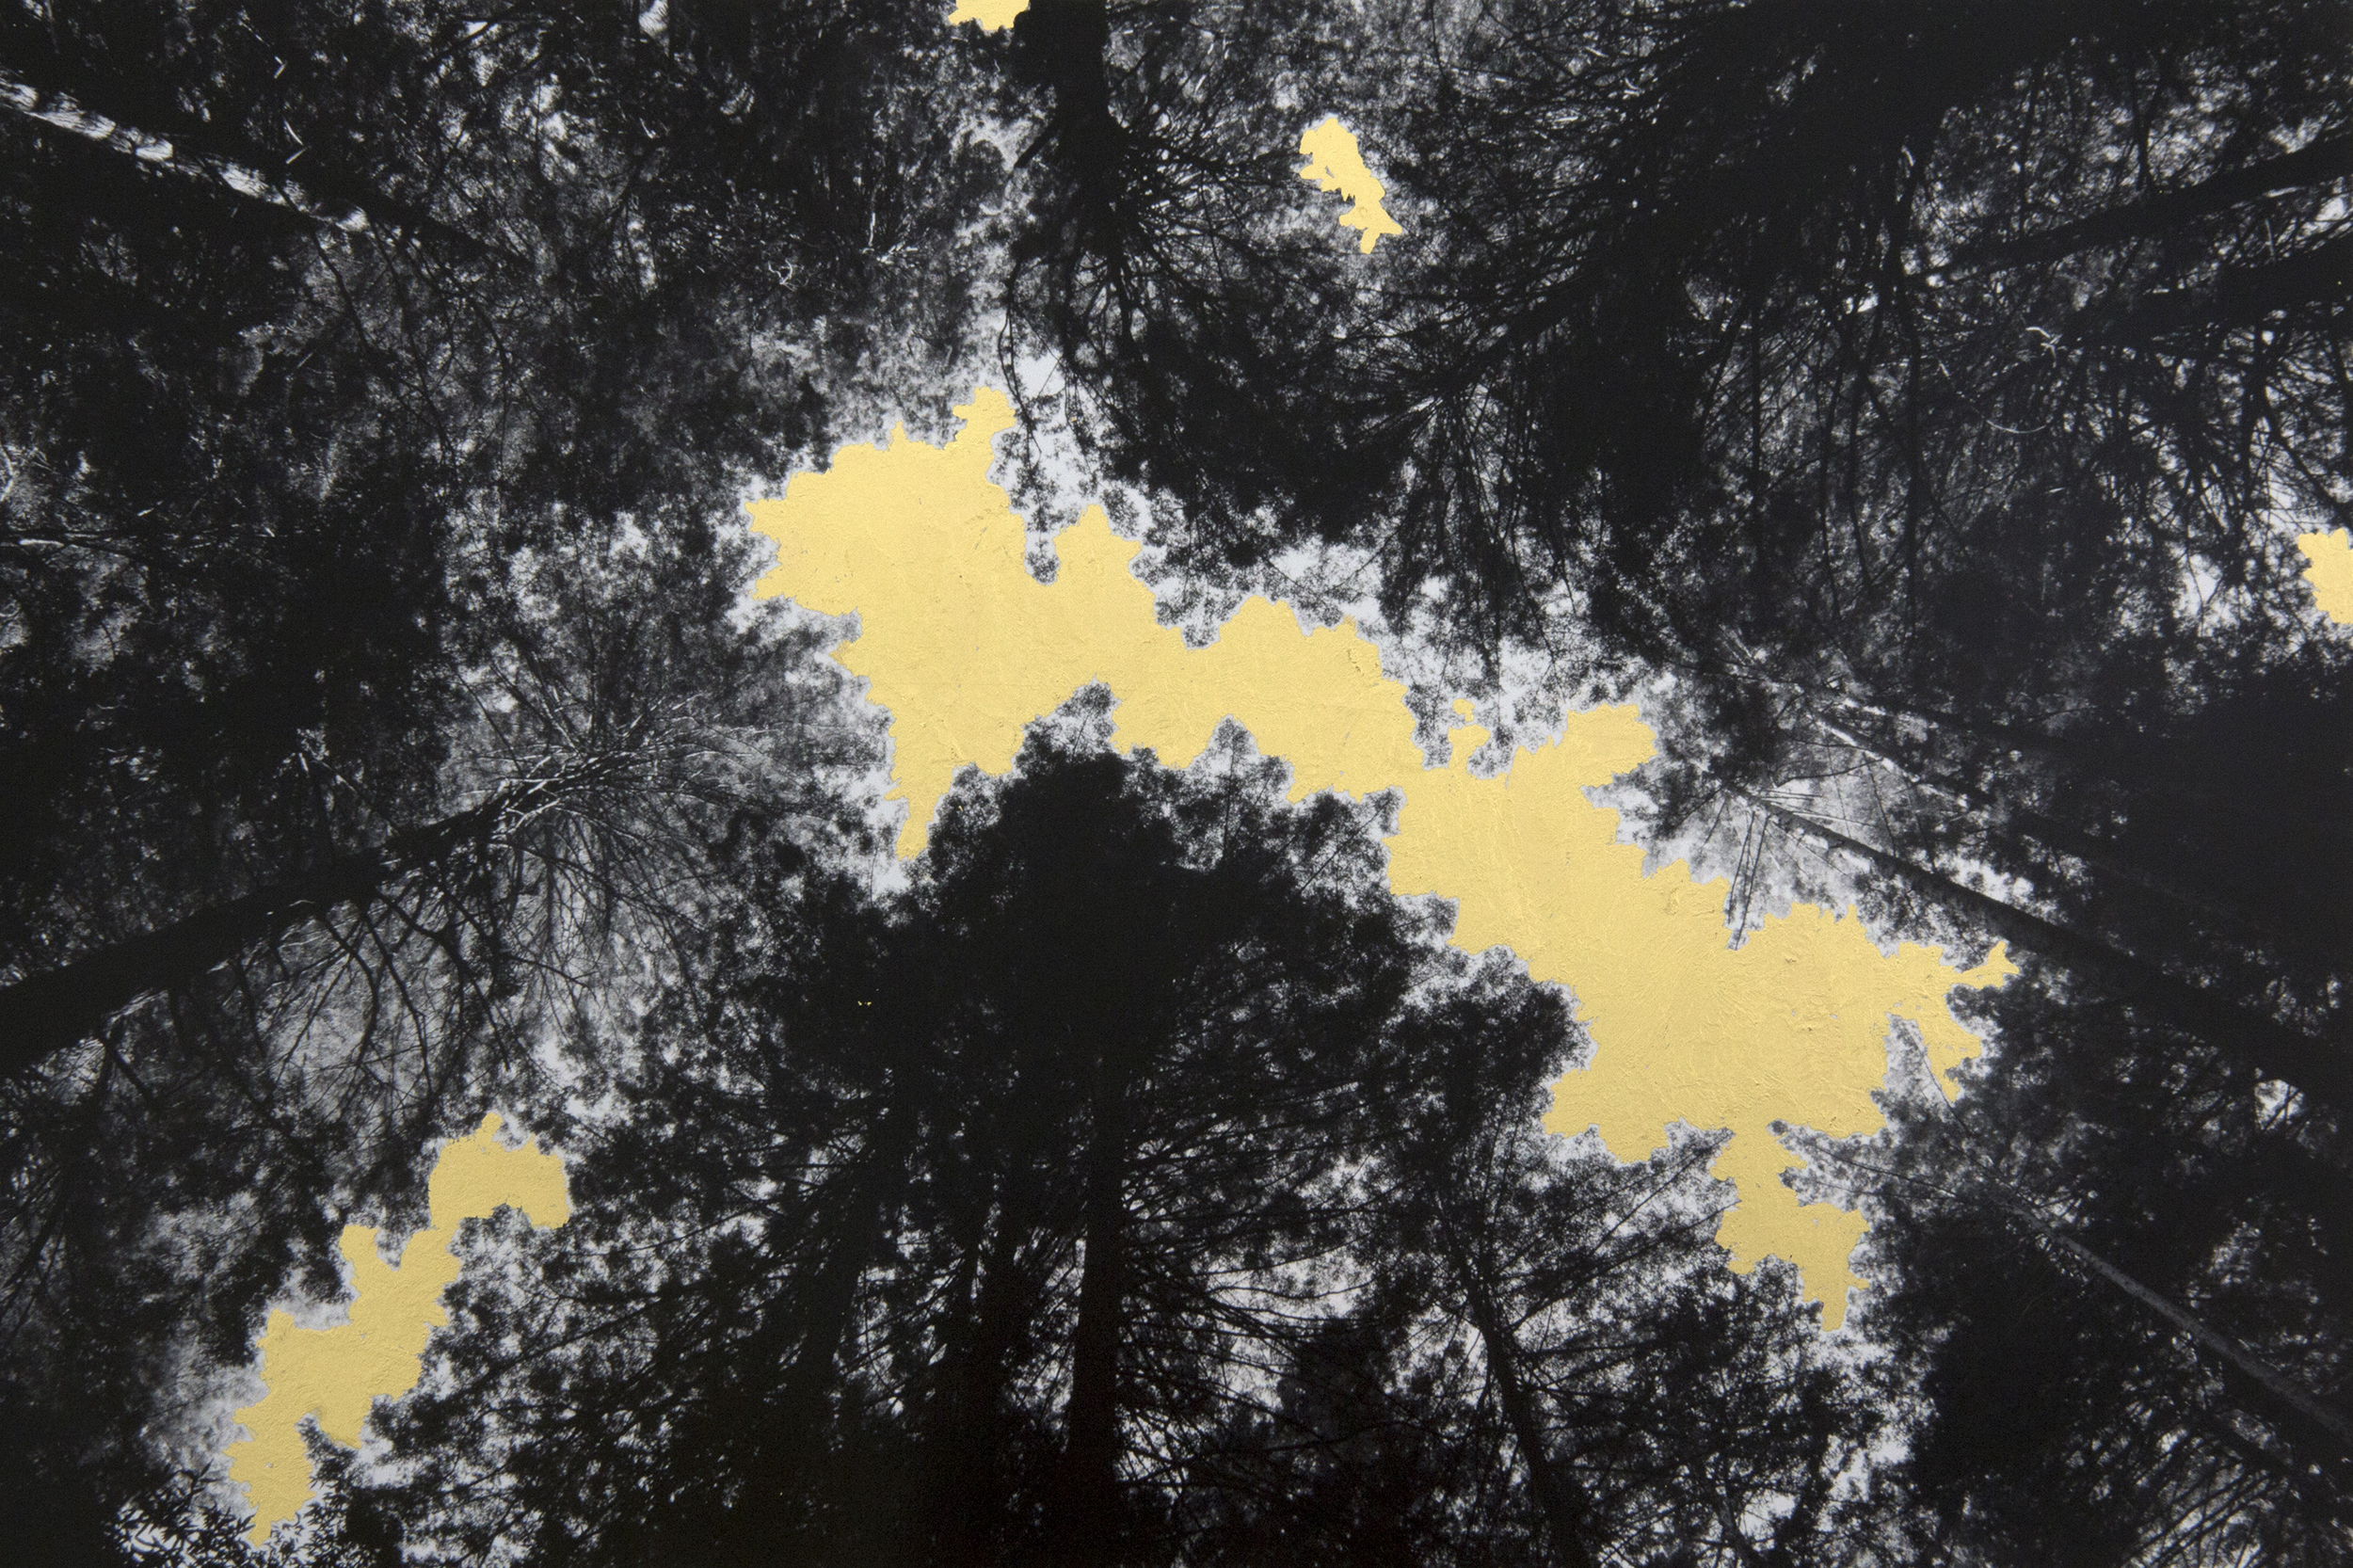 Canopy, 2014, digital pigment print with 22K gold leaf